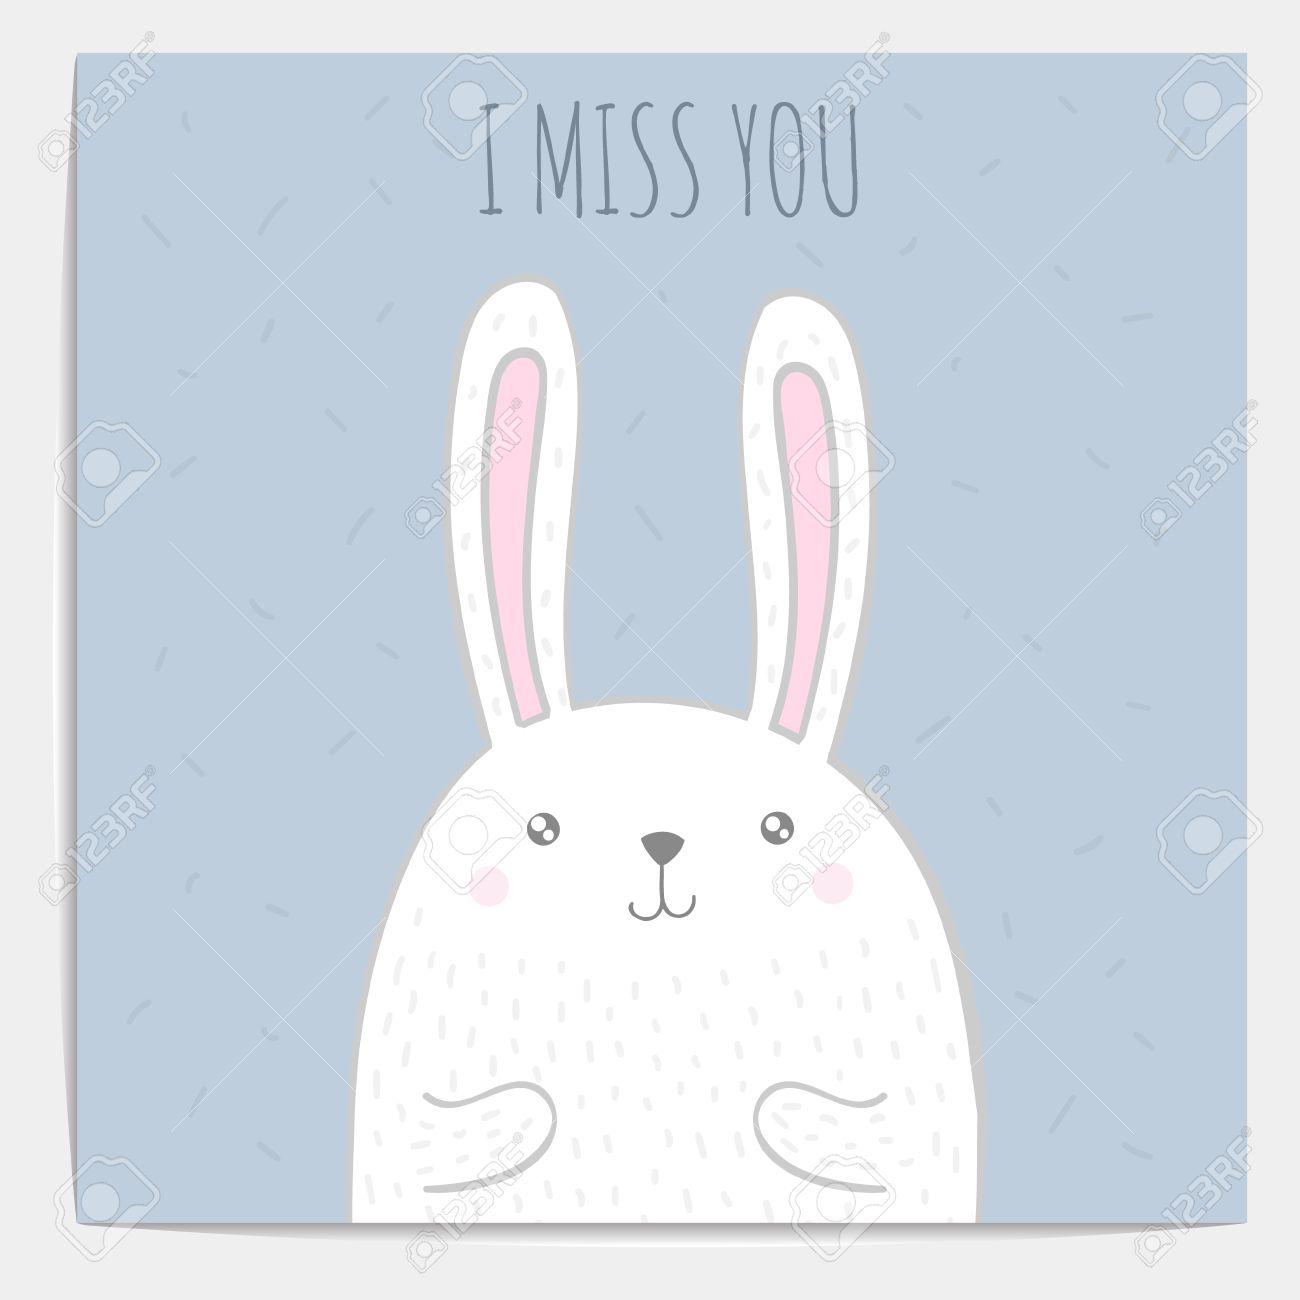 Inspirational romantic and love quote card. Cute hand drawn bunny..